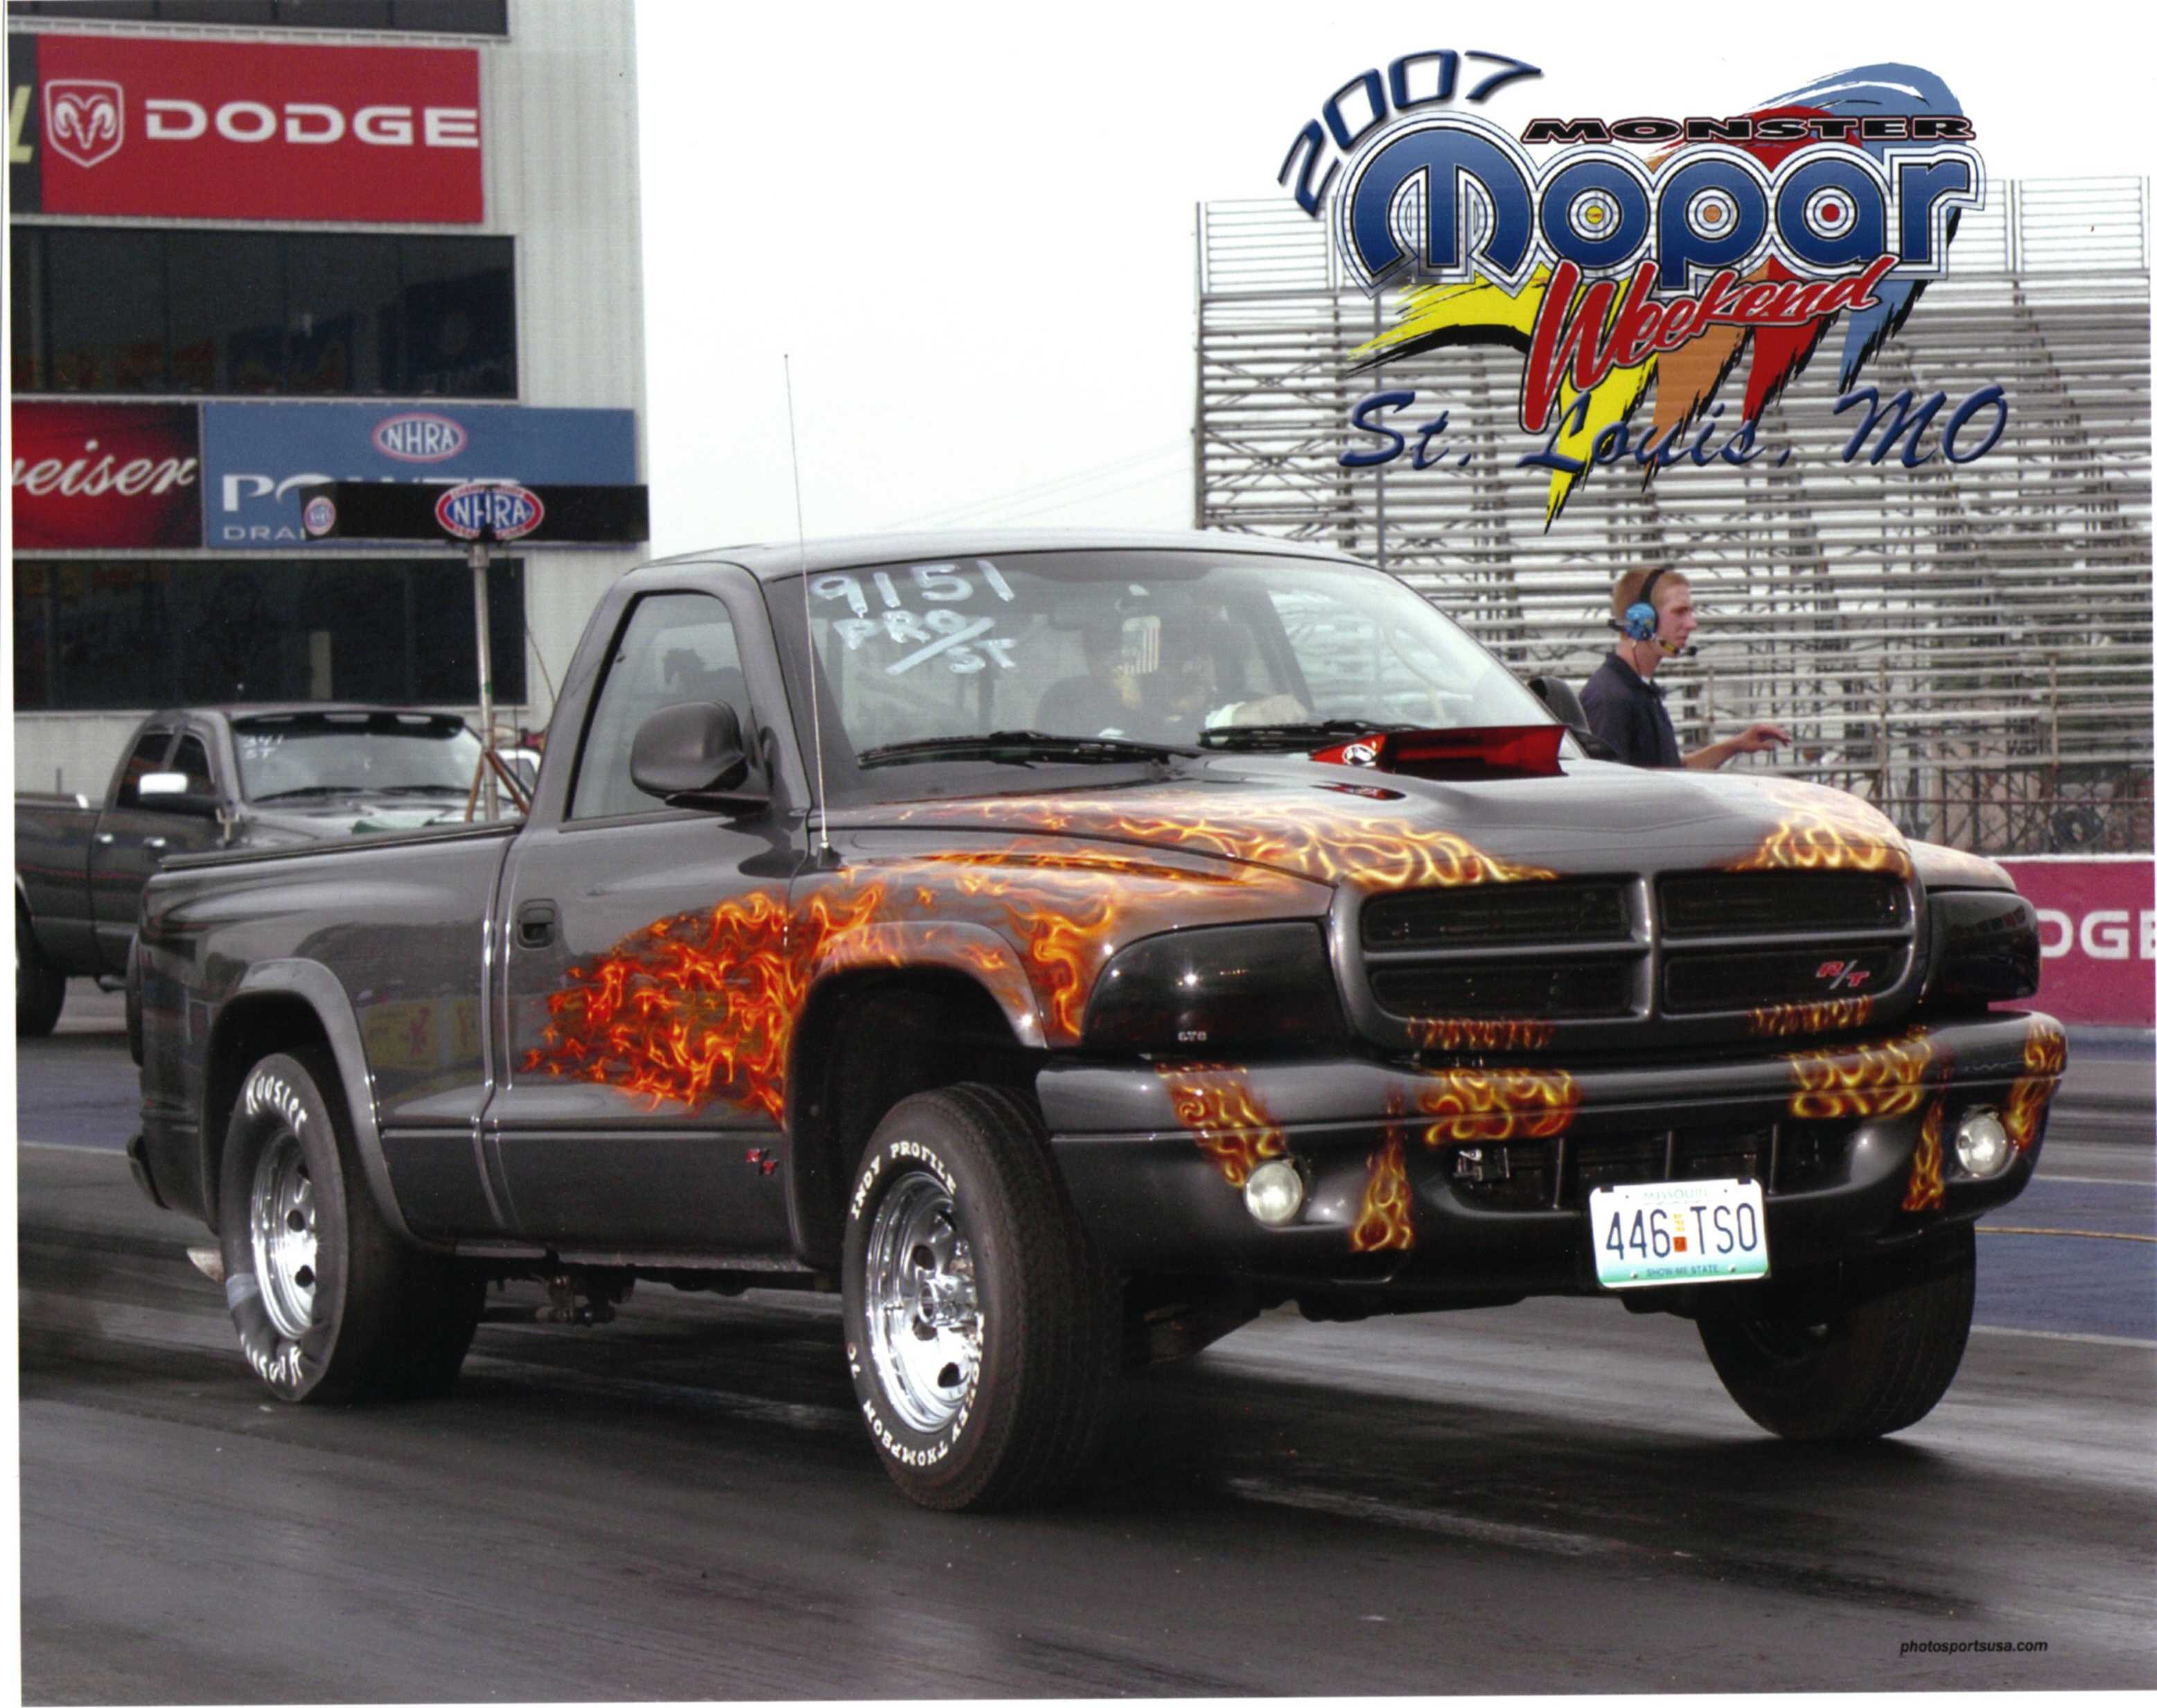 2002 Dodge Dakota R/T Nitrous